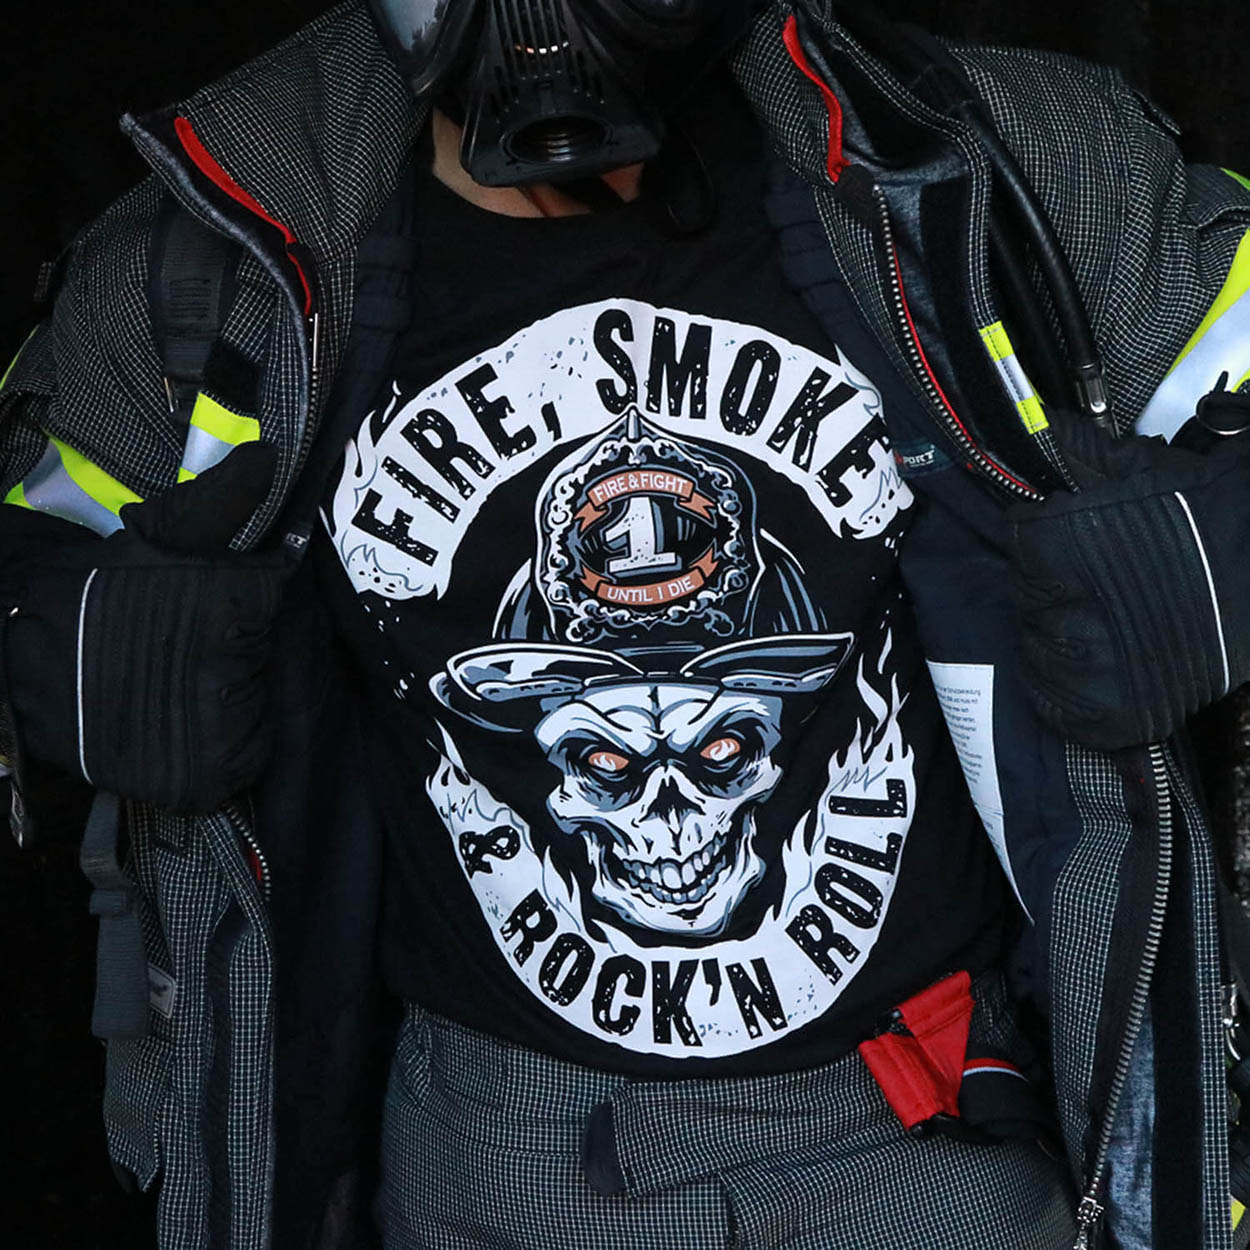 Fire Smoke & Rock´n Roll Original - Männer T-Shirt schwarz